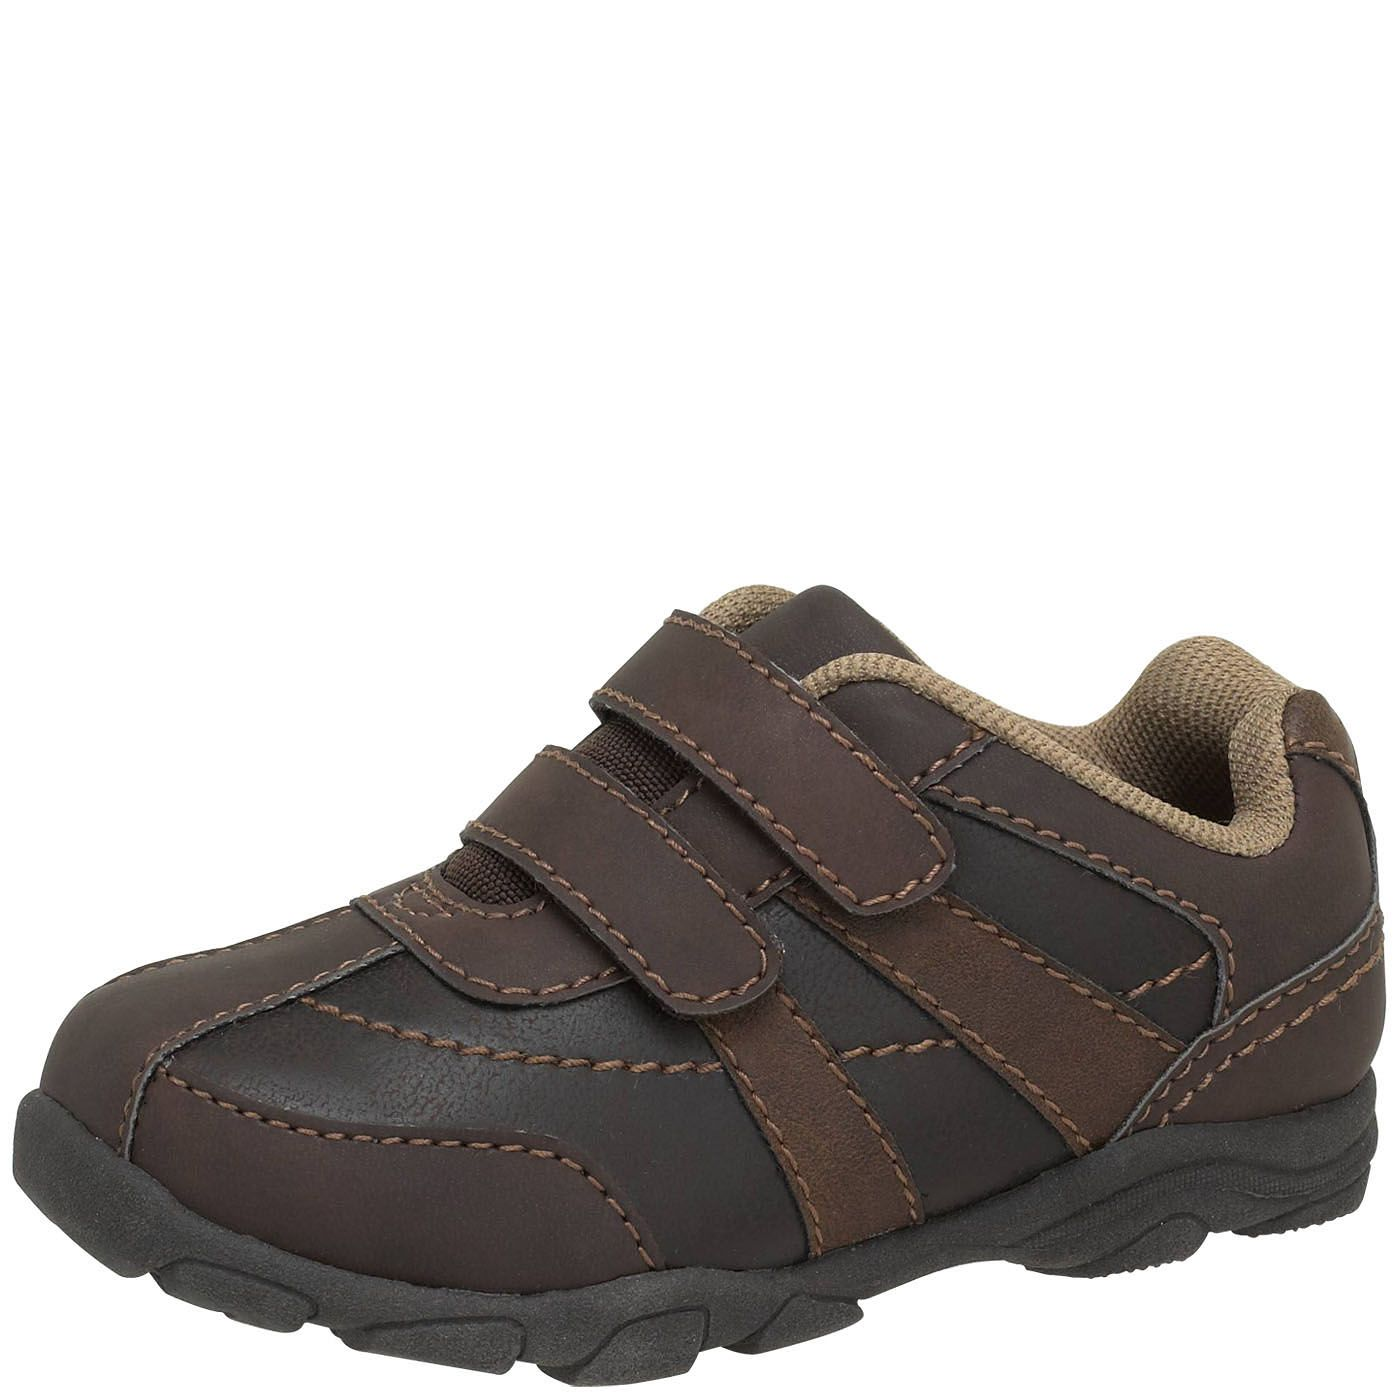 Smartfit Boys Toddler Aiden Sport Casual Payless Shoes